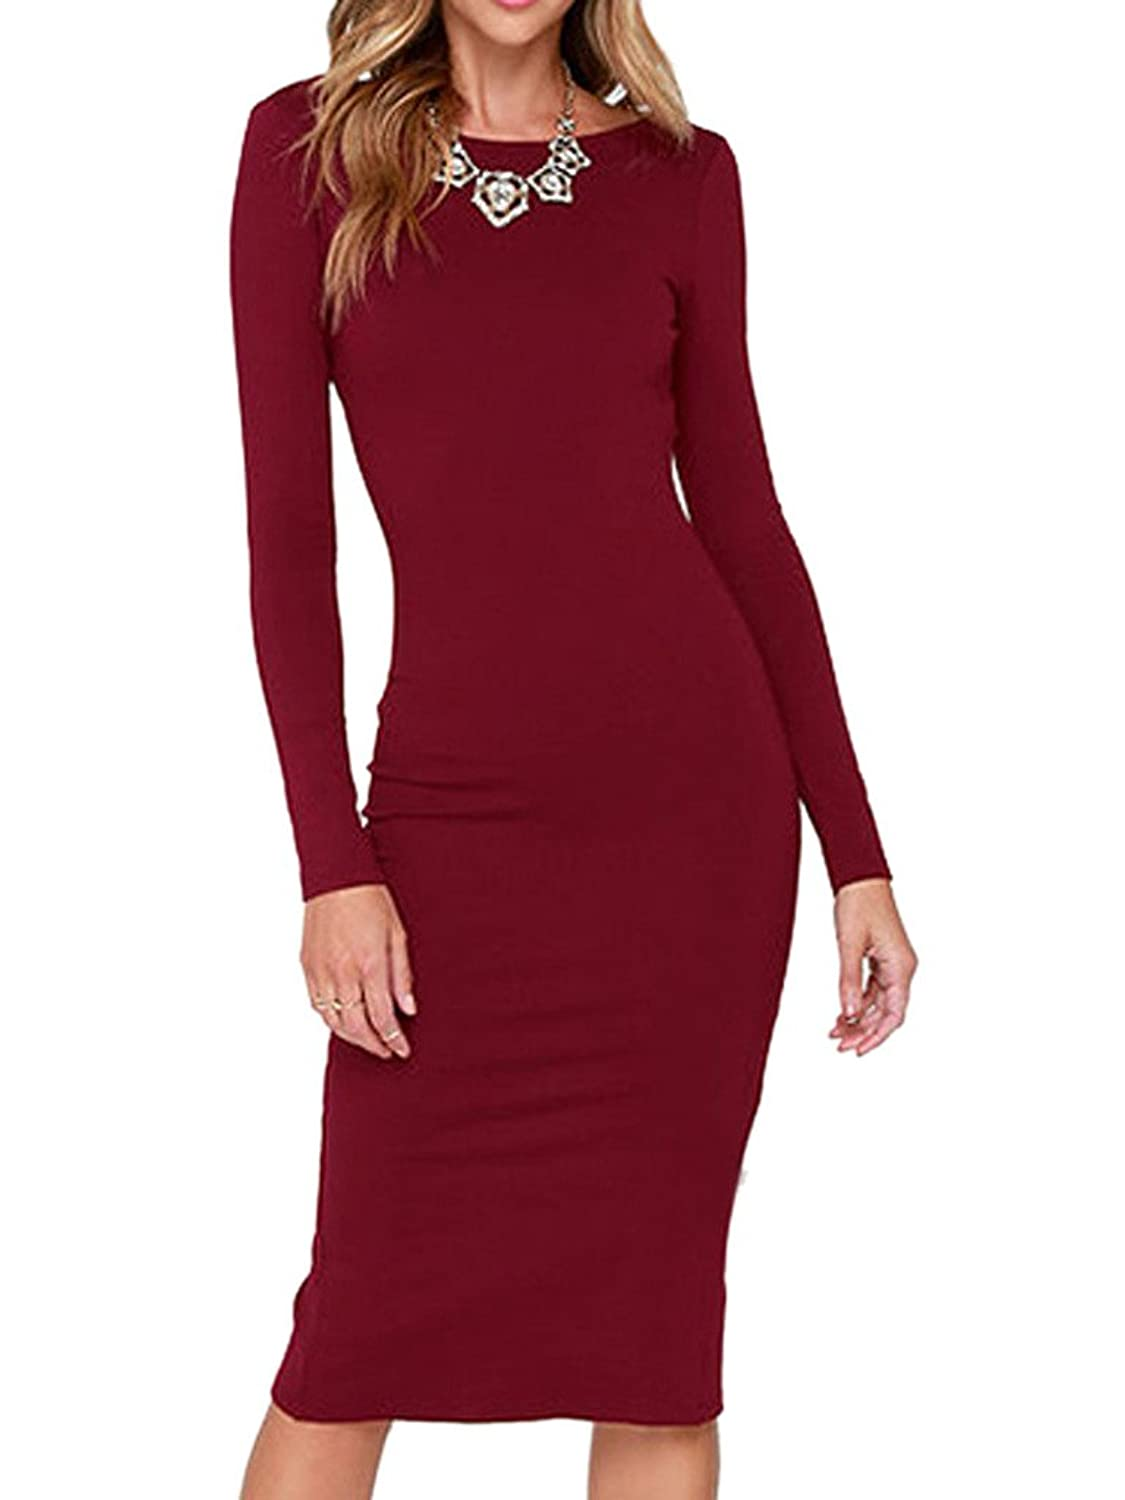 Clothink Women Black/Wine Red Long Sleeve Backless Split Bodycon Evening Dress